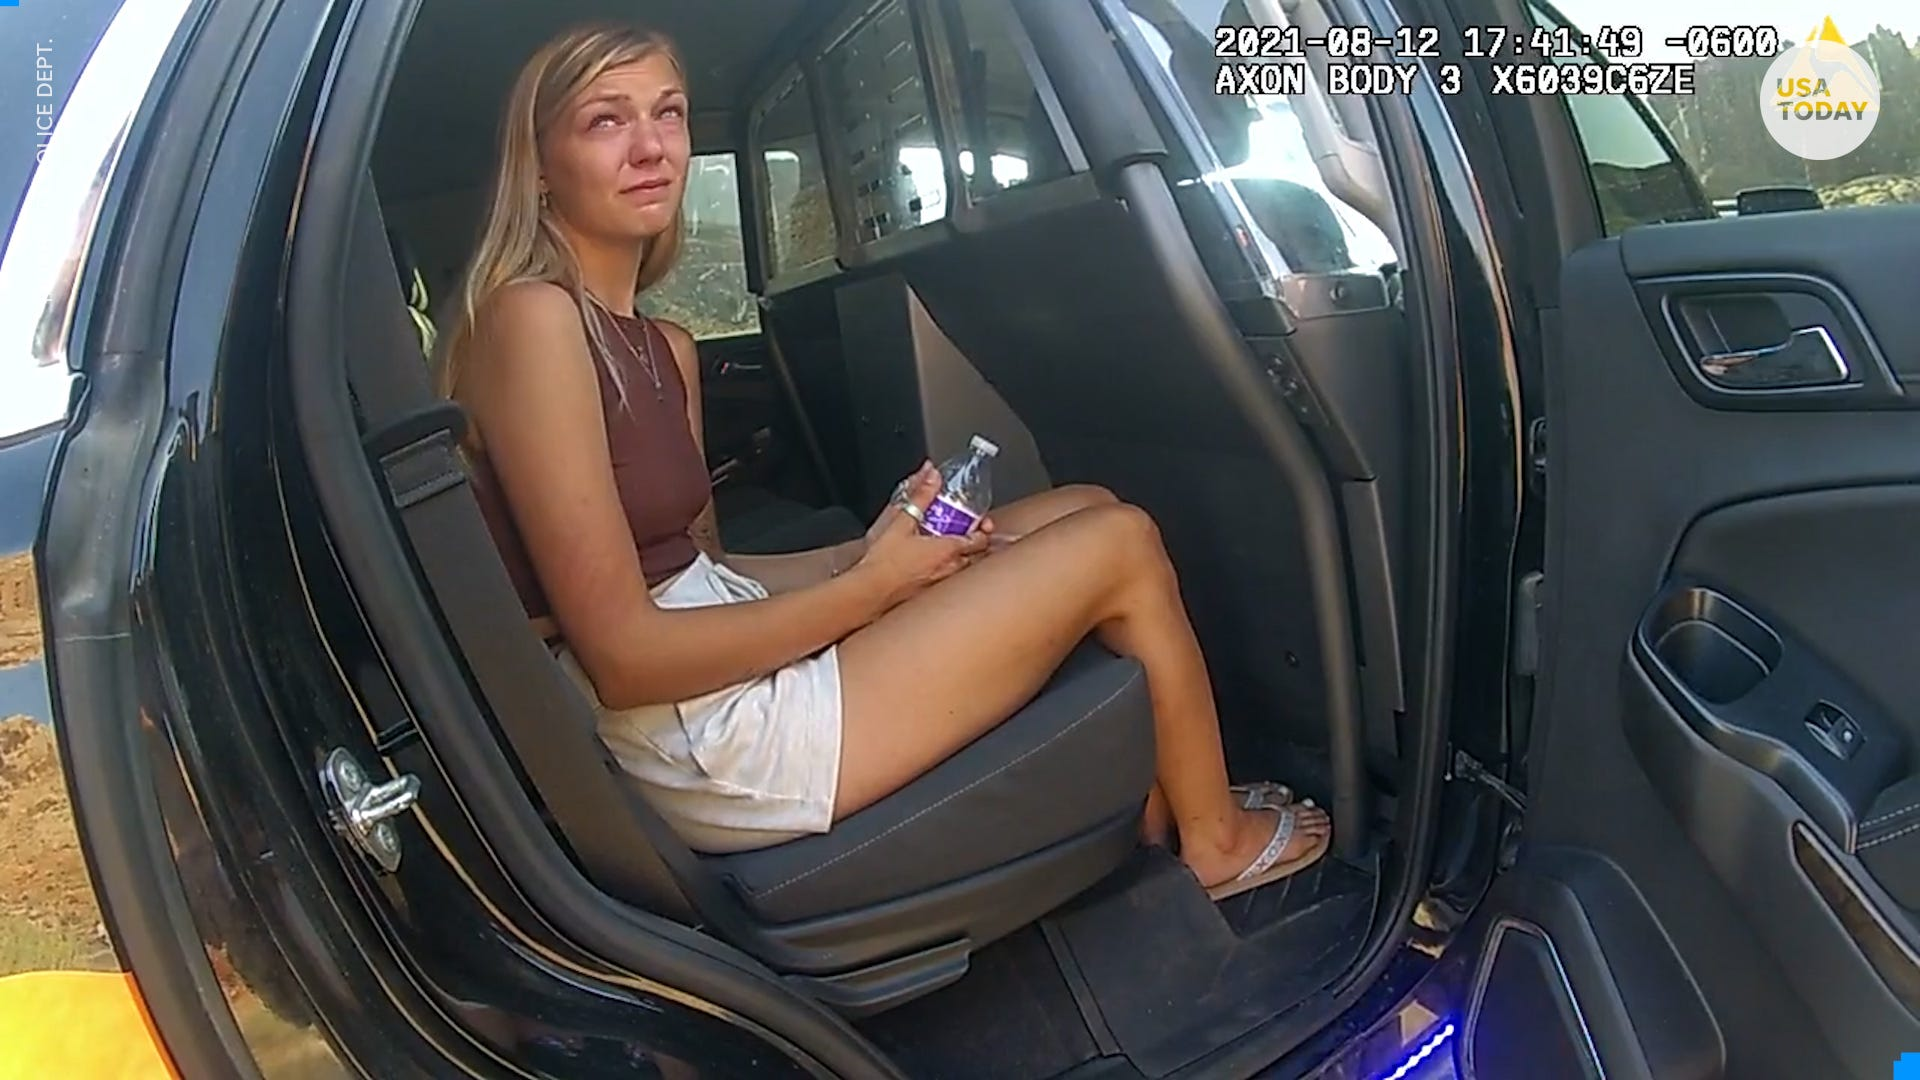 Bodycam footage shows aftermath of emotional fight between Gabby Petito and fiancé in Utah